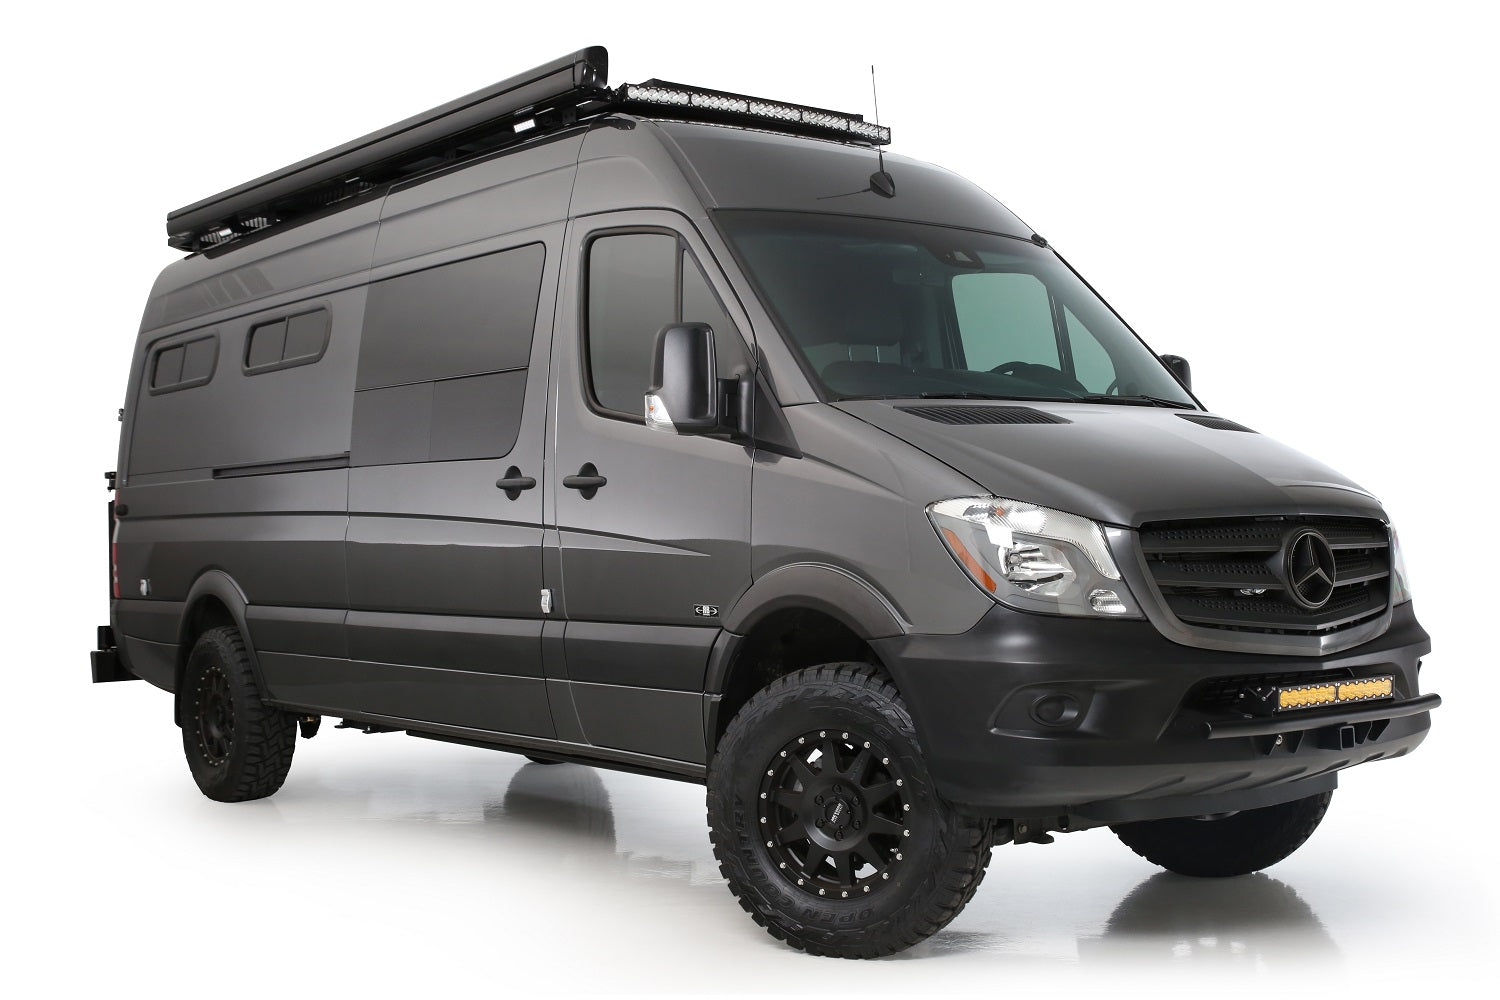 RB Touring Van RD - 170 2500 4x4